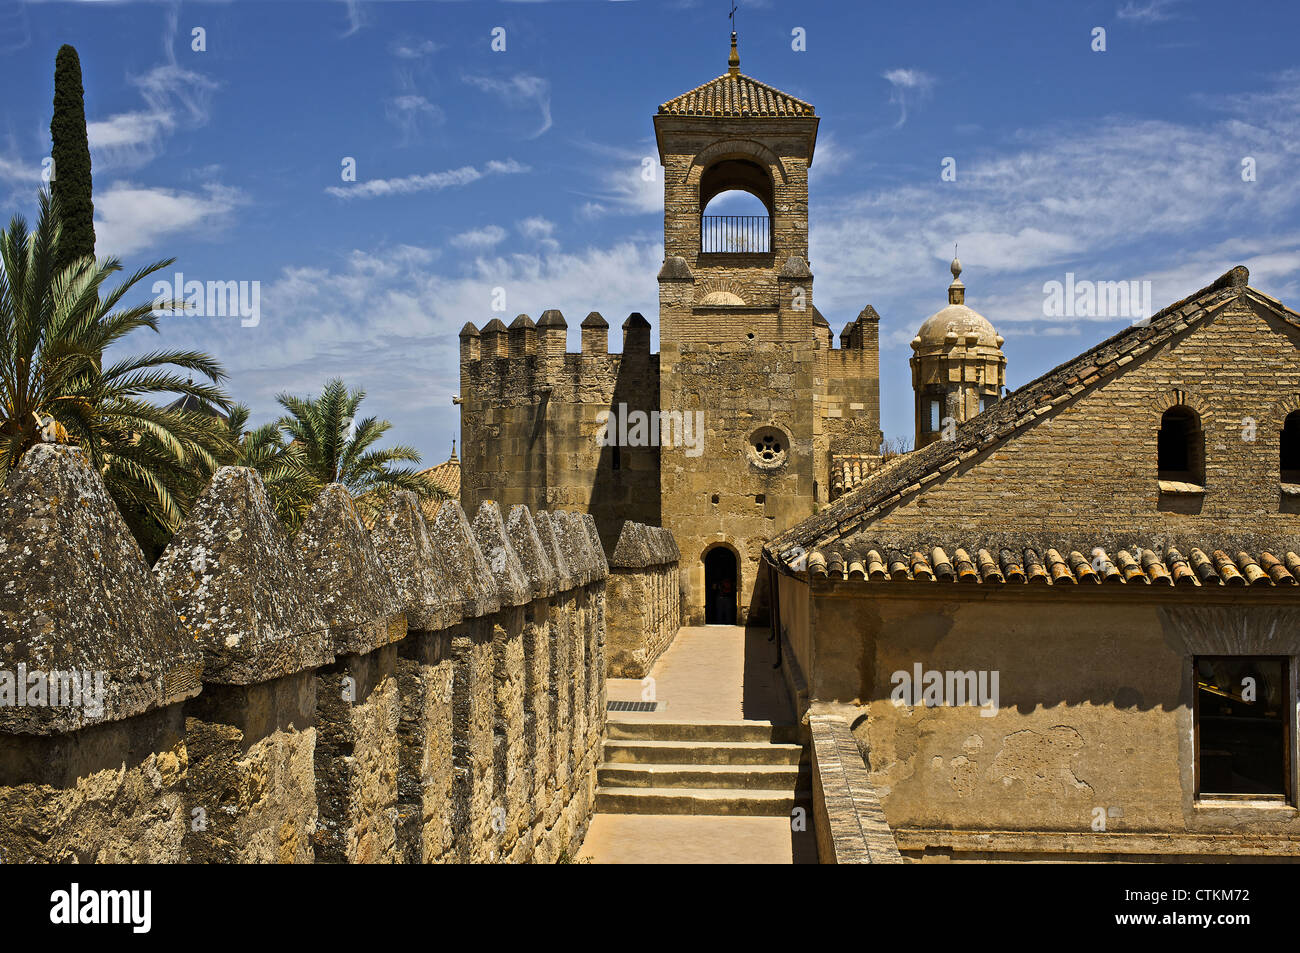 Spain. Cordoba. The Christian Kings Alcazar. 14th century. Tribute Tower from the rampart. Andalusia. - Stock Image